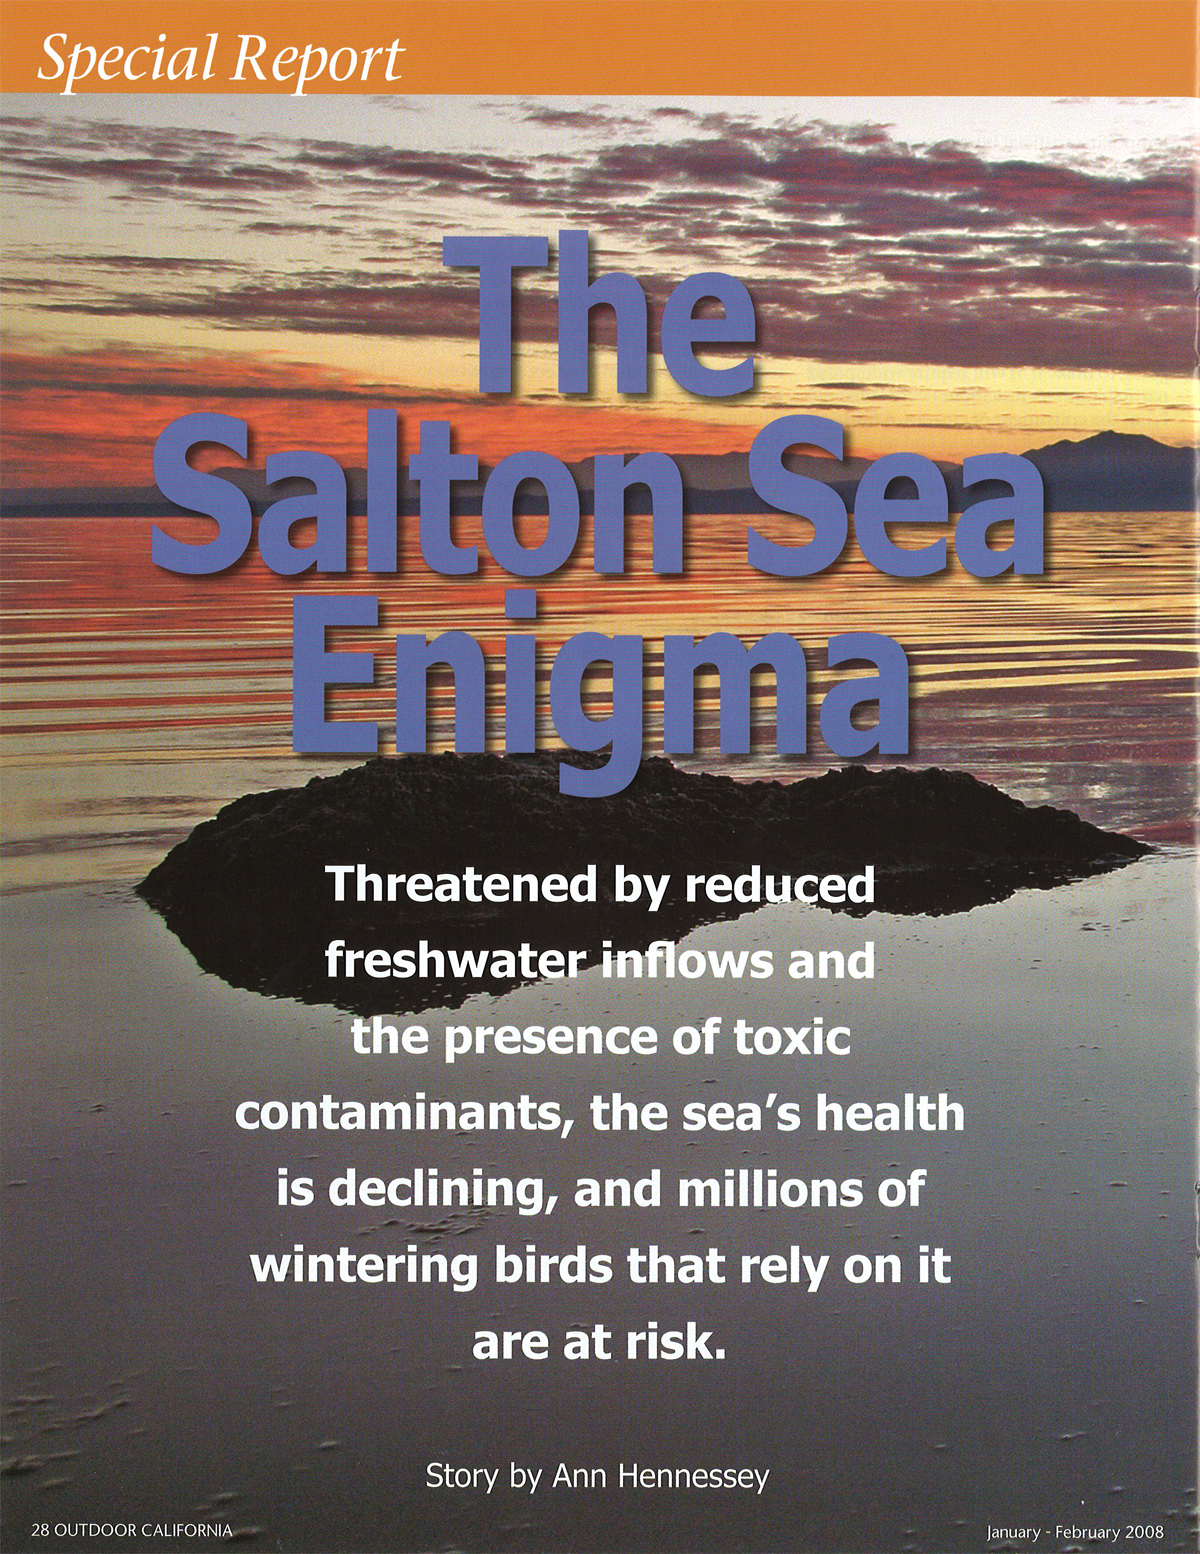 the_salton_sea_enigma_p28